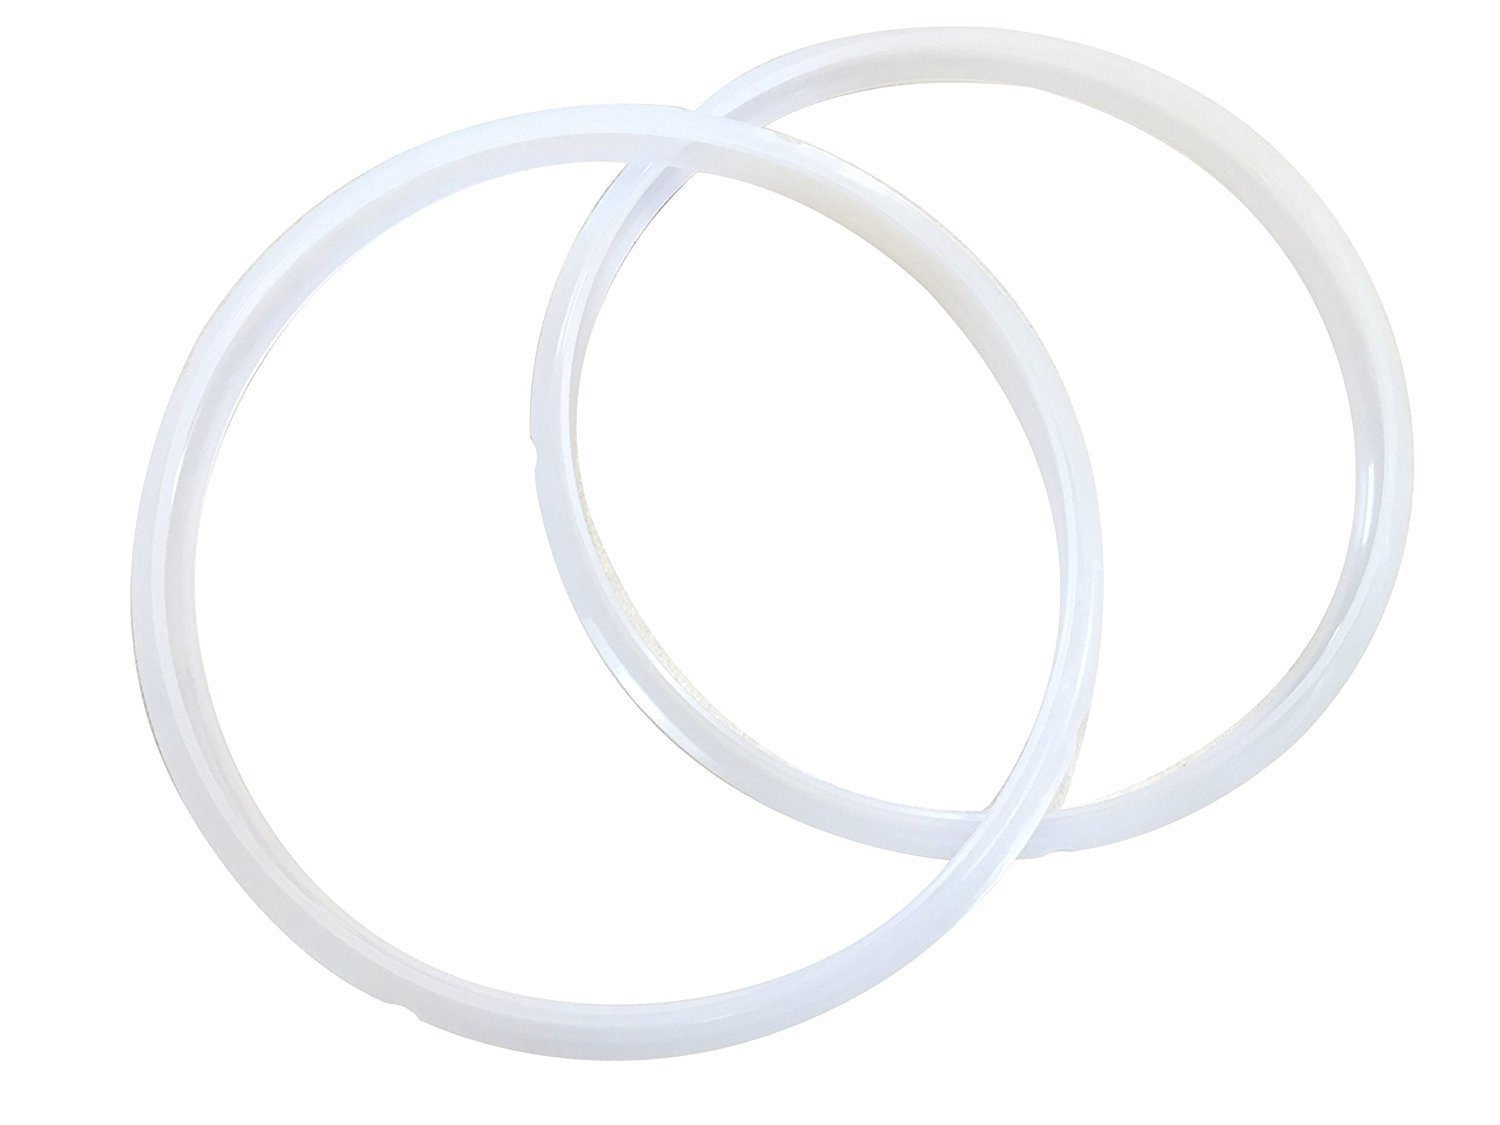 TWIN PACK: Two Rubber Gaskets For 8 Quart Power Pressure Cookers by GJS Gourmet